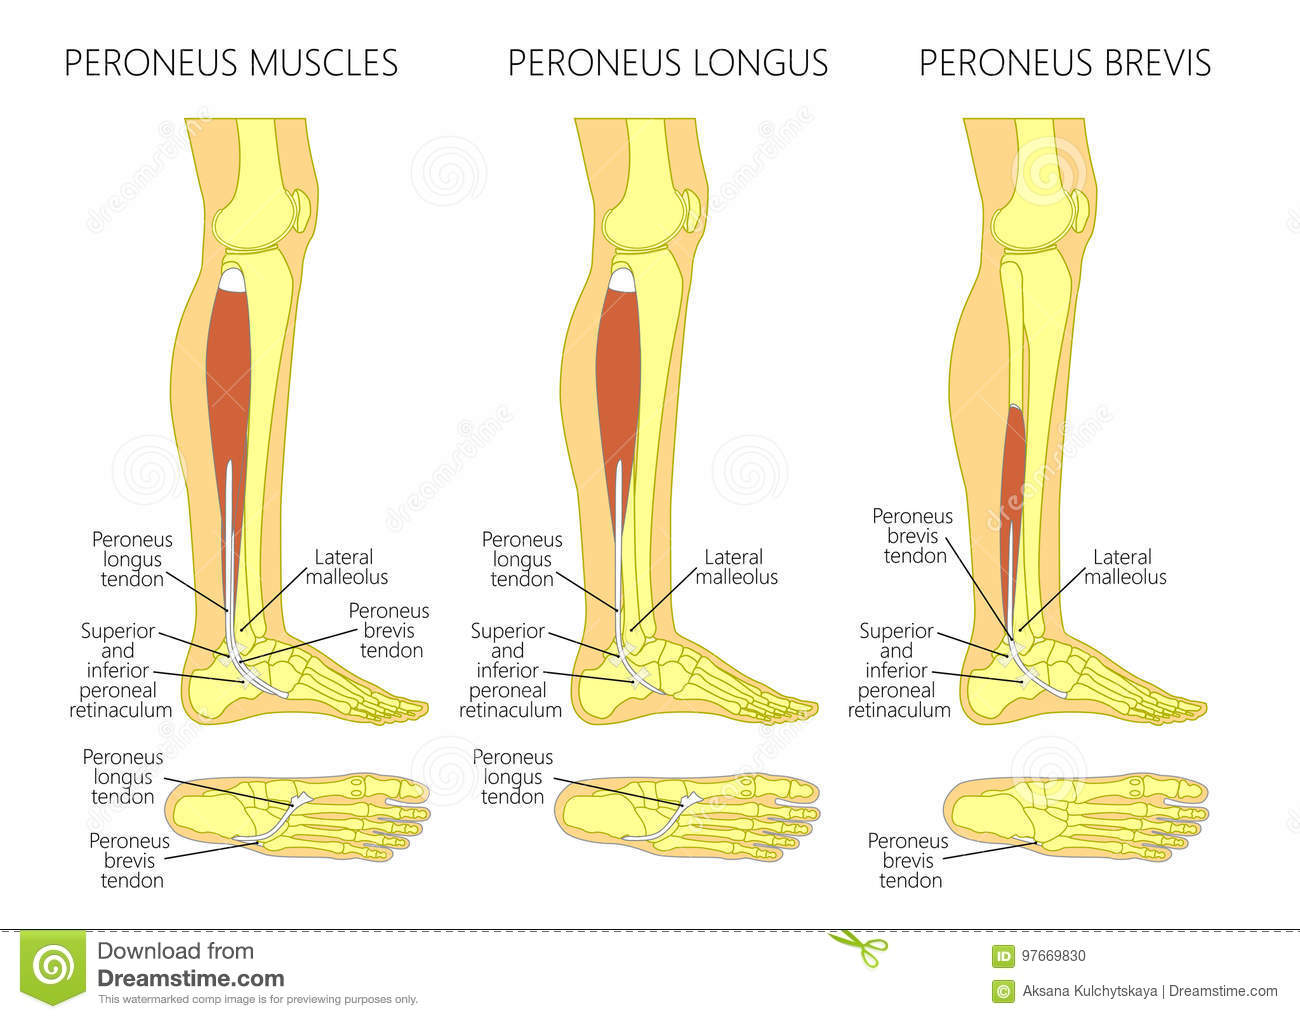 Peroneus longus muscle stock vector. Illustration of podiatry - 97669830